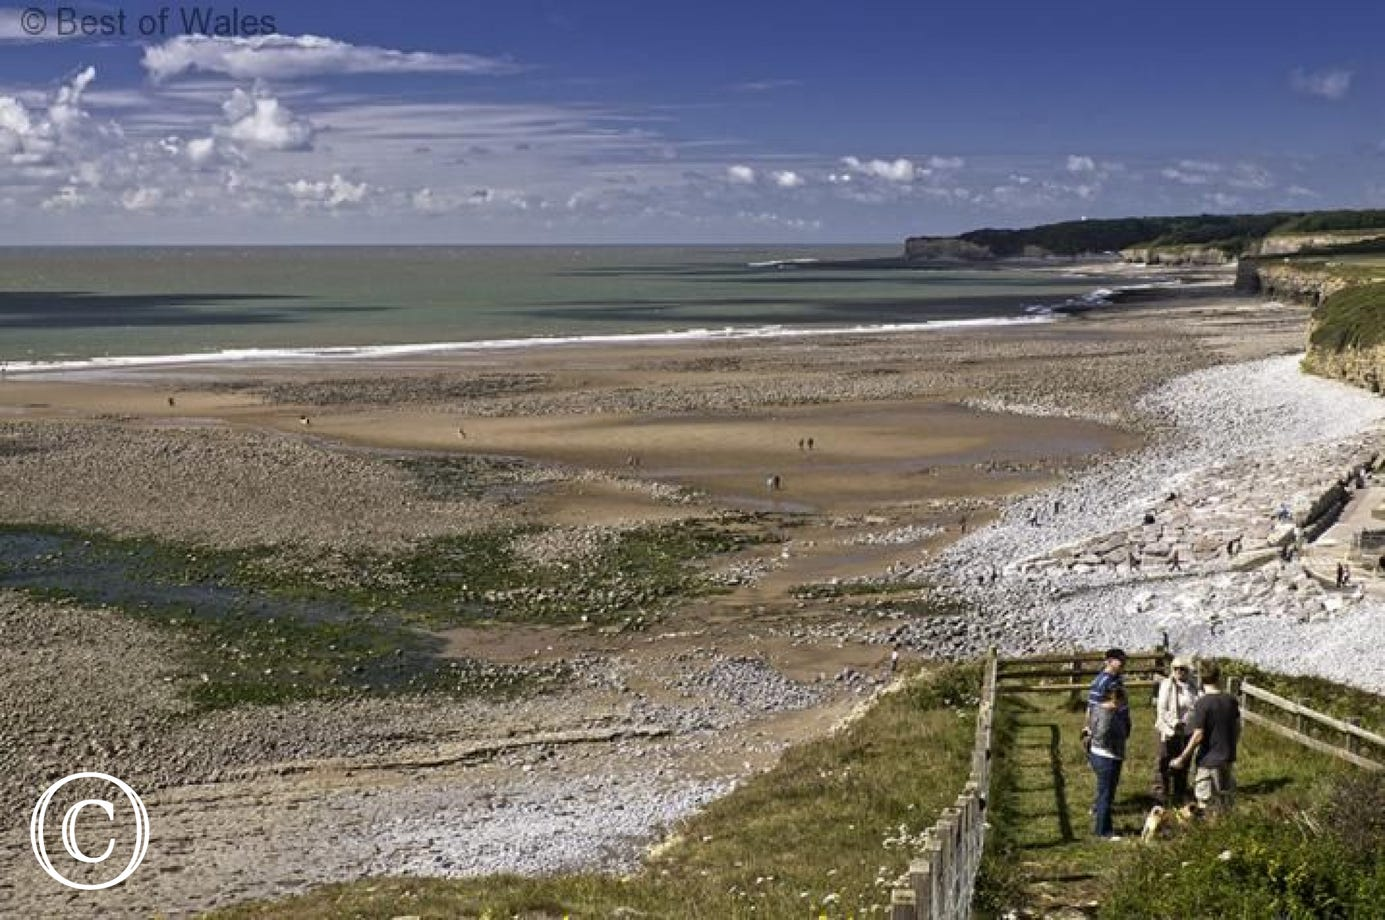 Glamorgan Heritage Coast on your doorstep